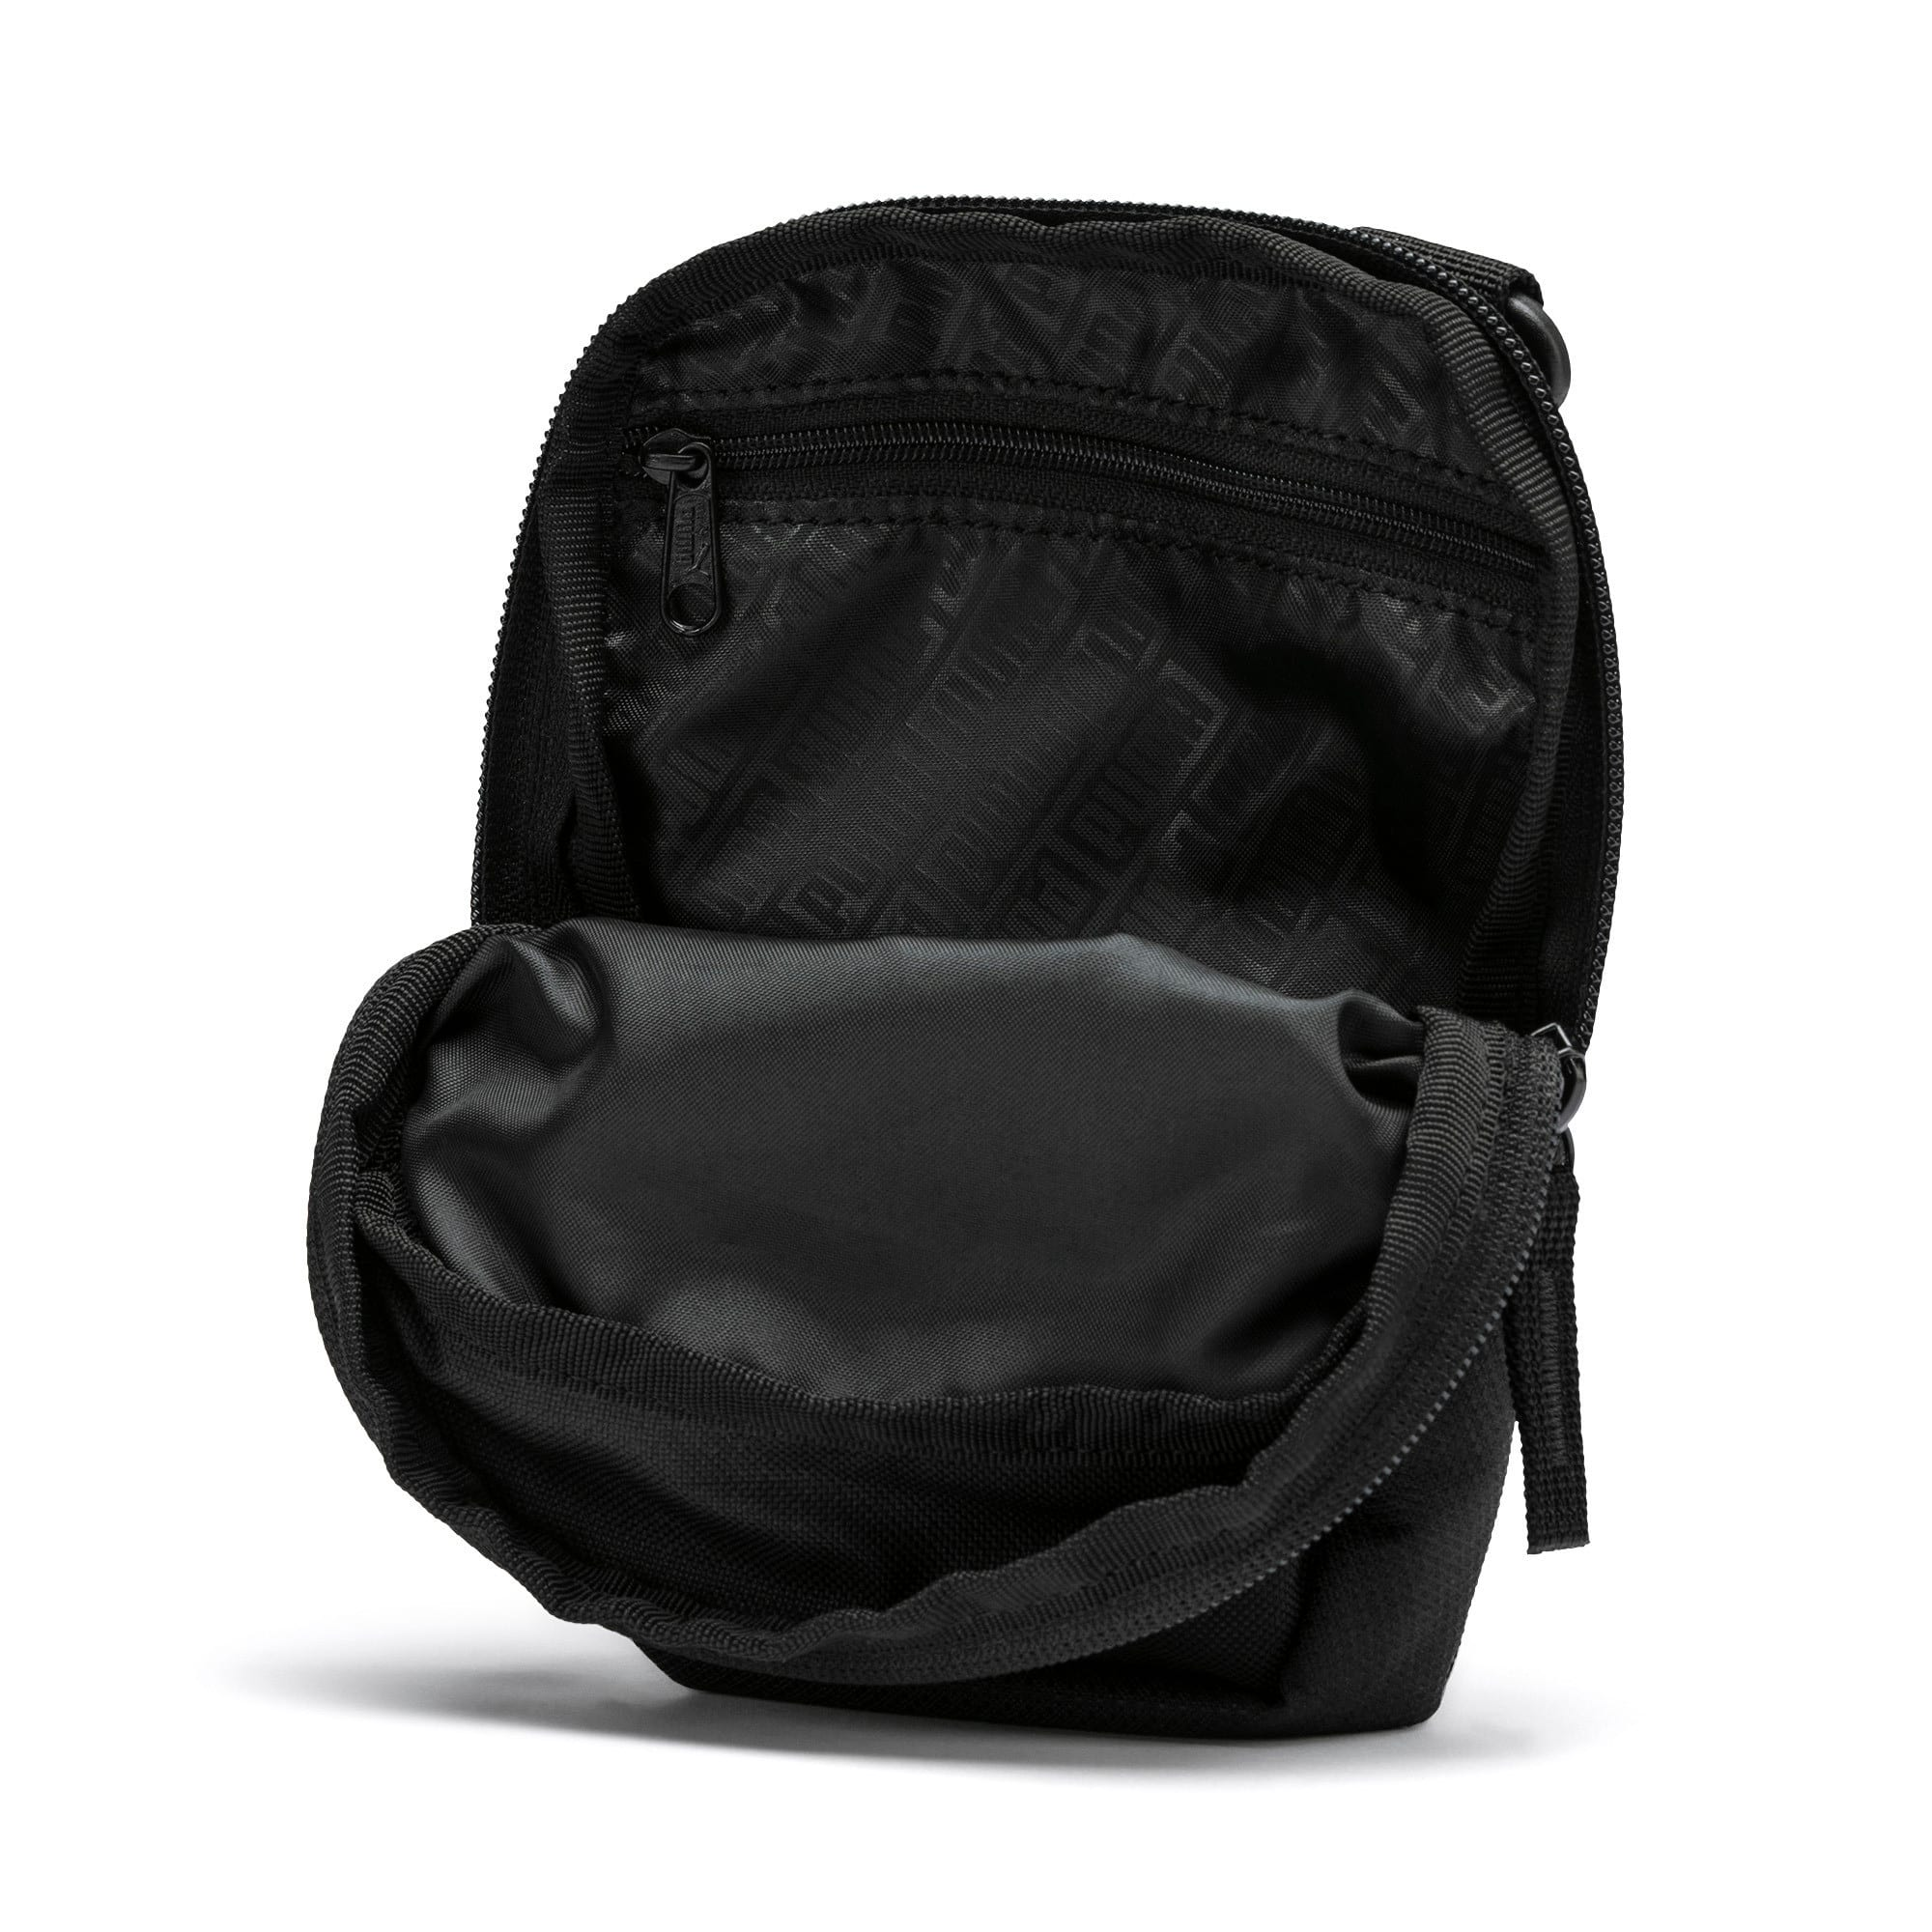 Thumbnail 3 of X Mini Portable Bag, Puma Black, medium-IND